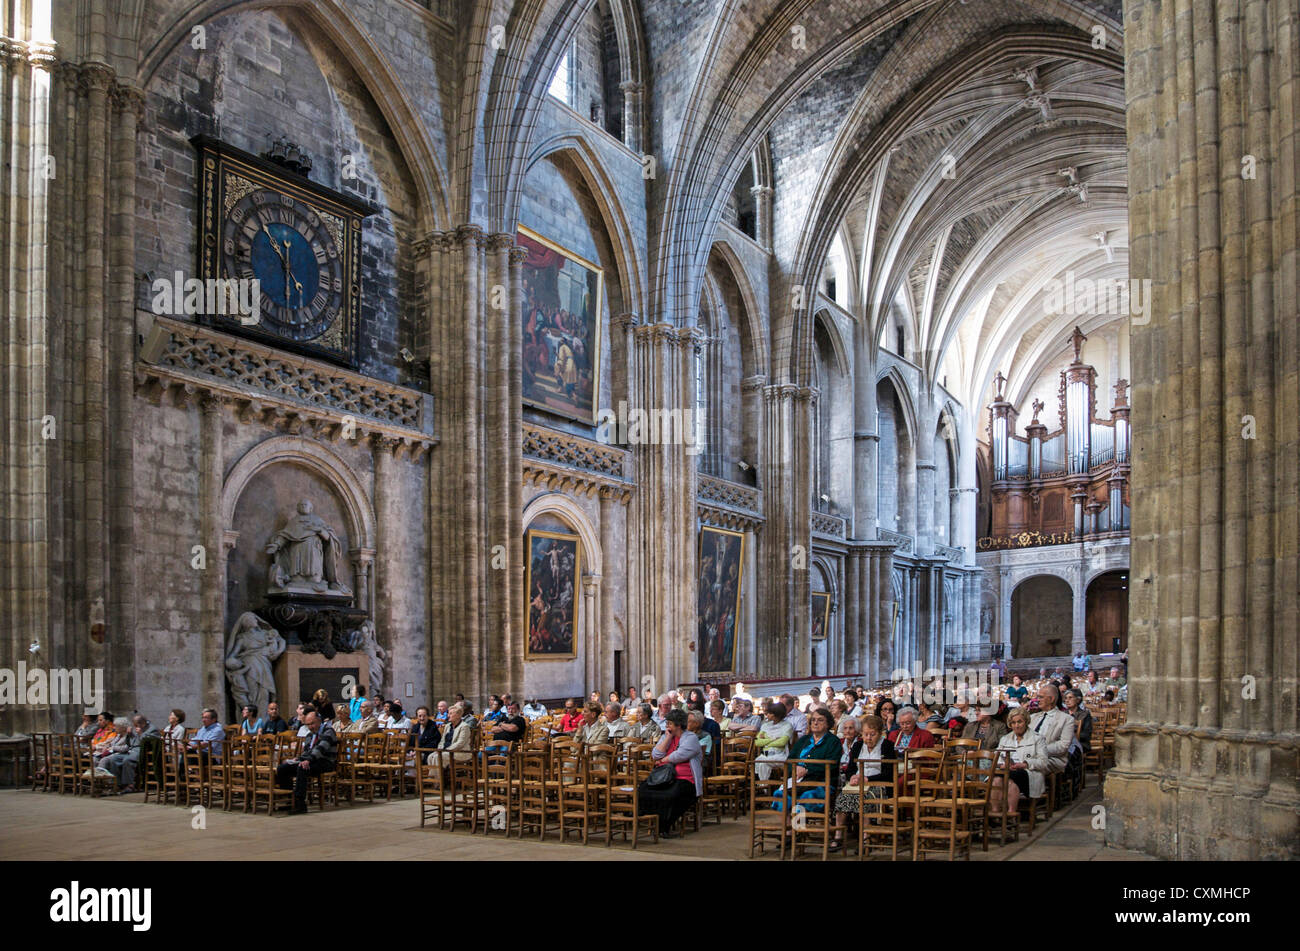 People / worshipers inside Saint Andre Cathedral, Bordeaux, France - in the city centre - Stock Image